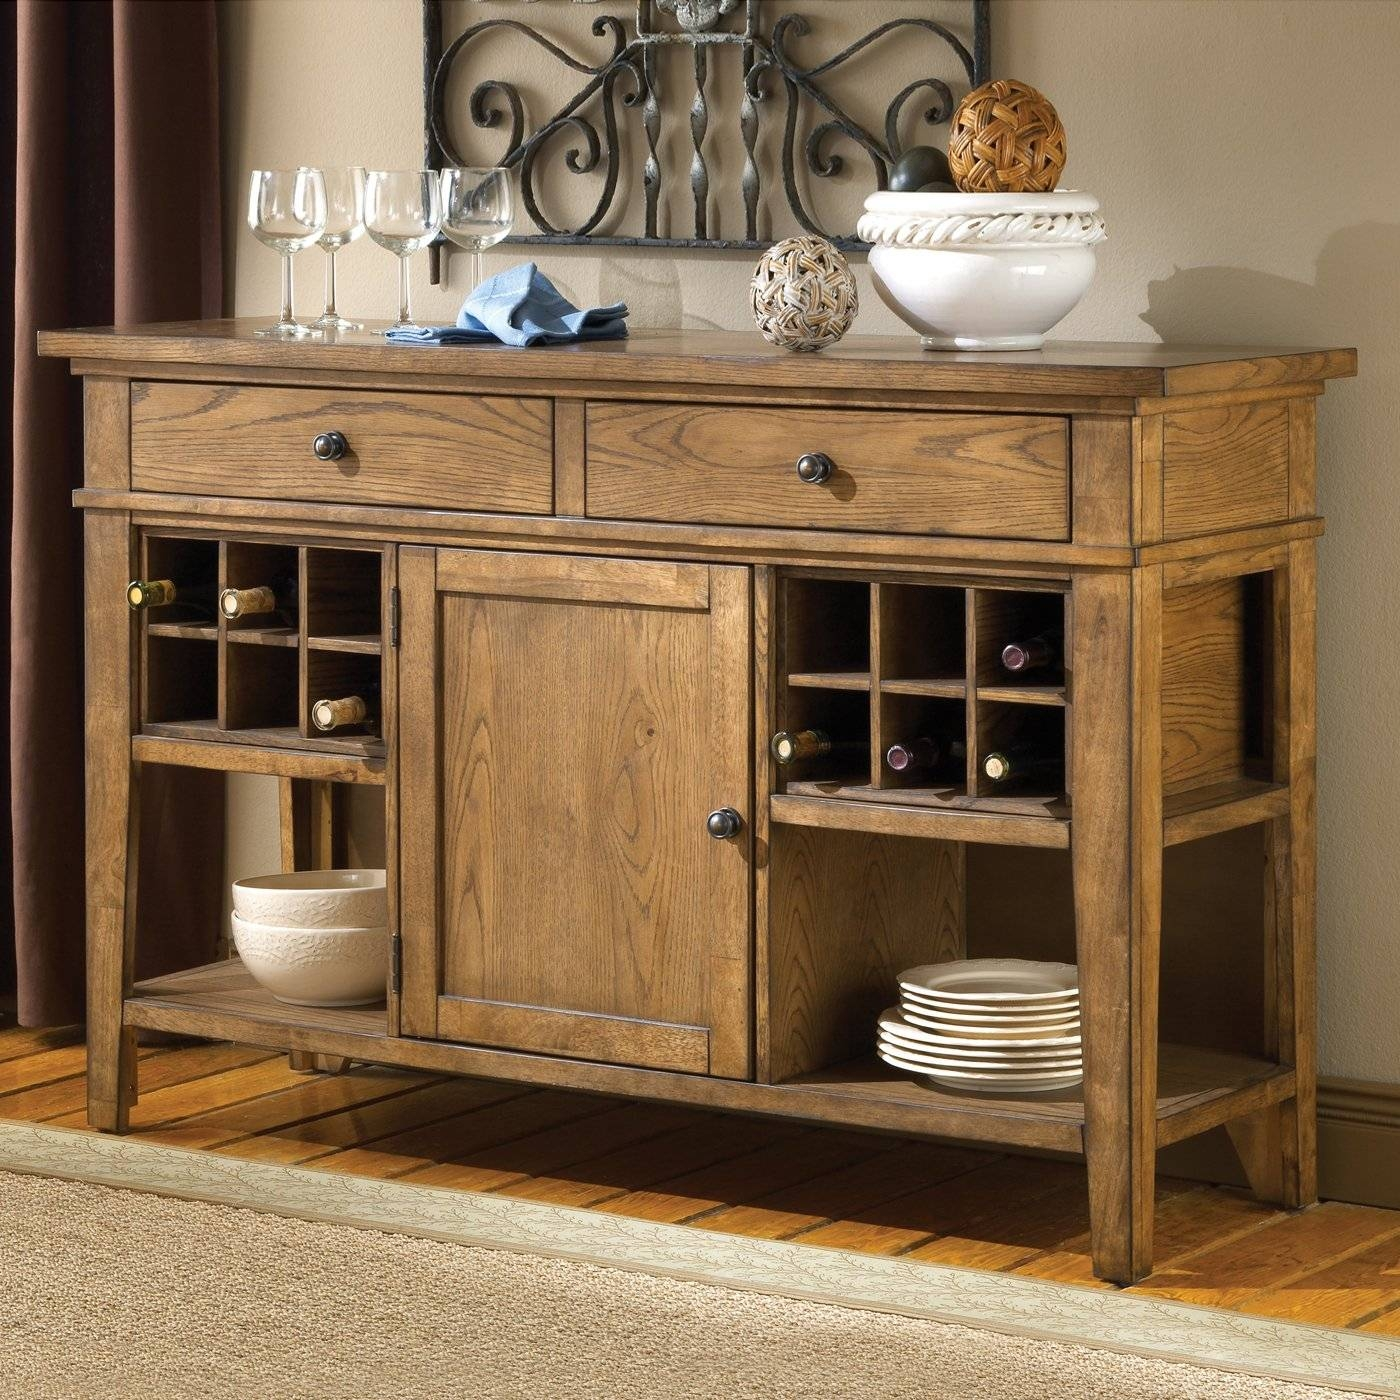 Sideboards. Glamorous Sideboard With Wine Storage: Sideboard-With pertaining to Dark Brown Sideboards (Image 25 of 30)